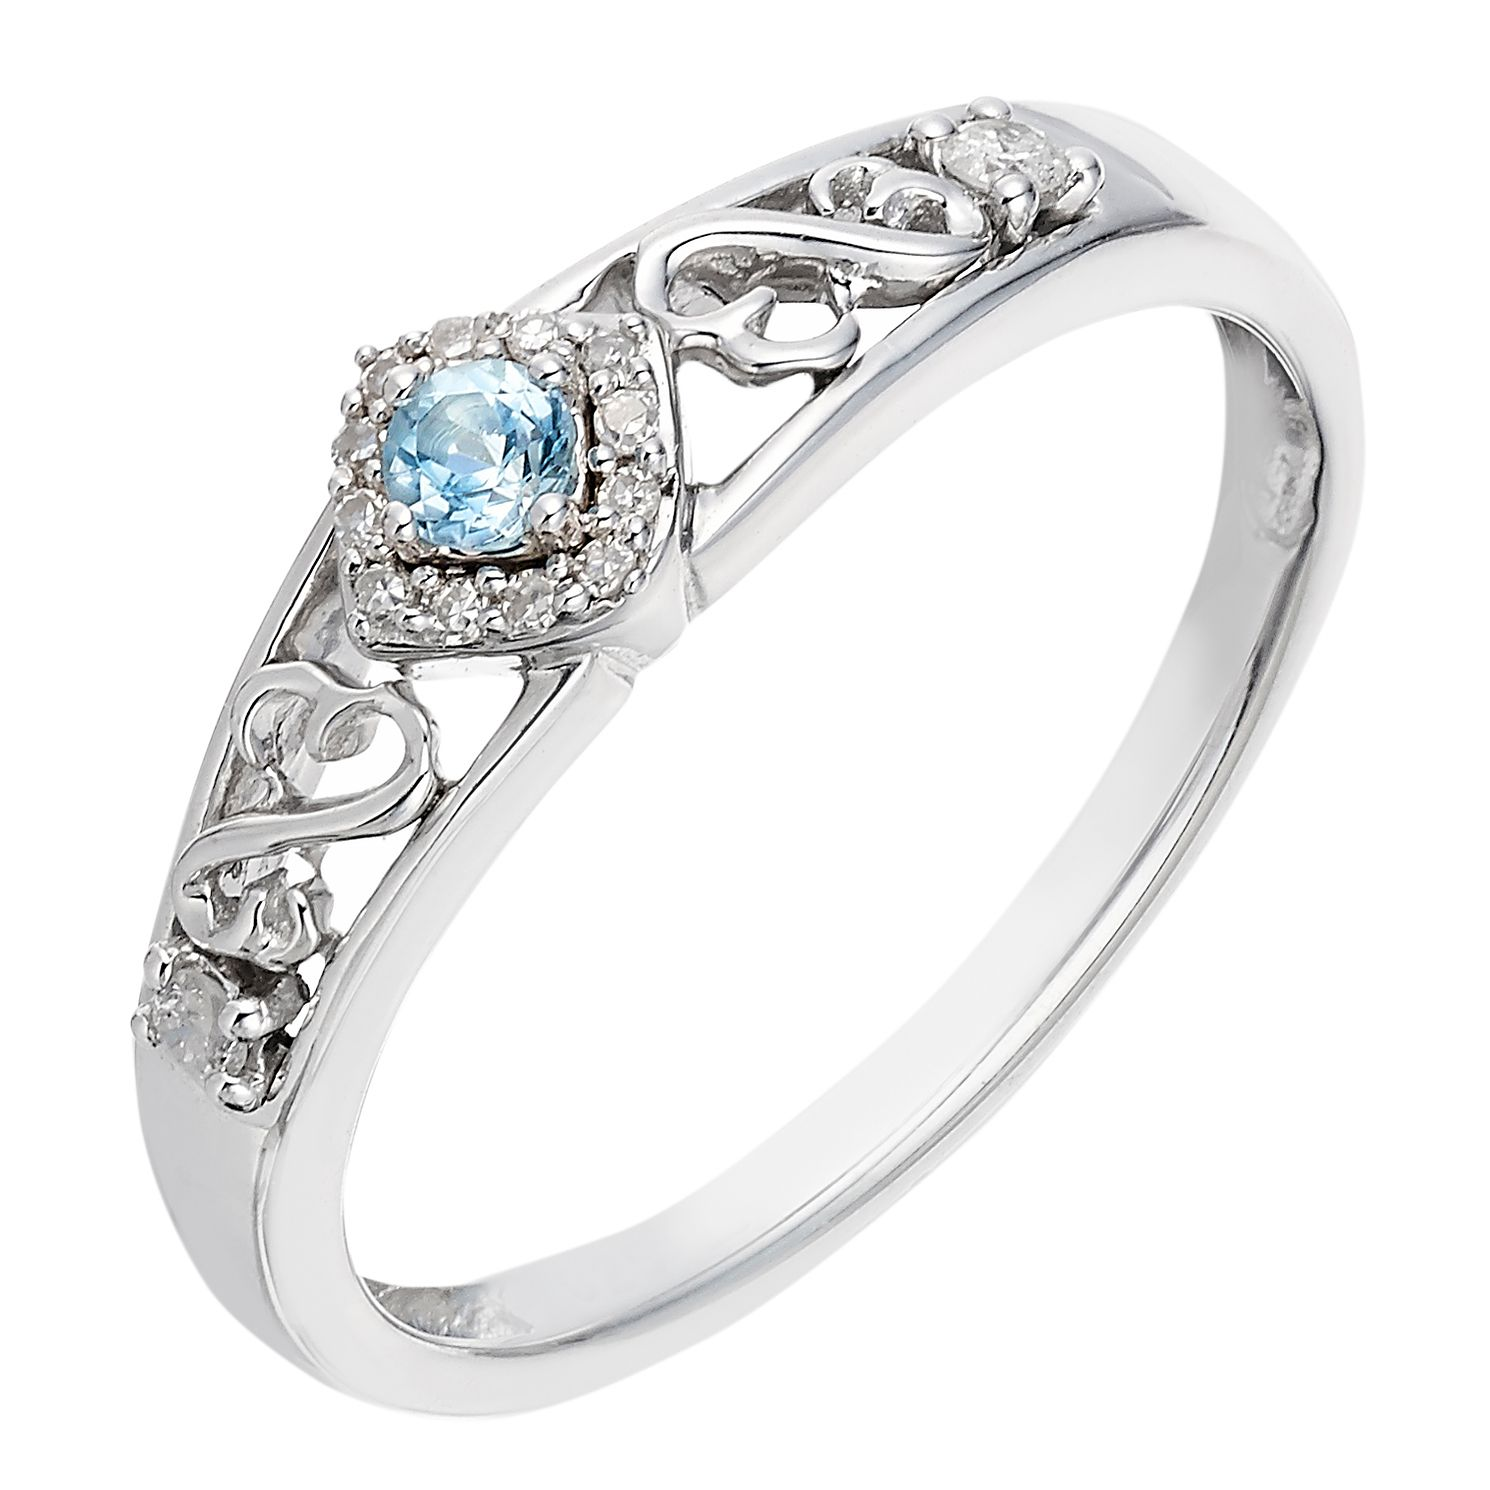 web s blue current cartier ring en jewels light lot rings sotheby auctions ecatalogue and noble magnificent